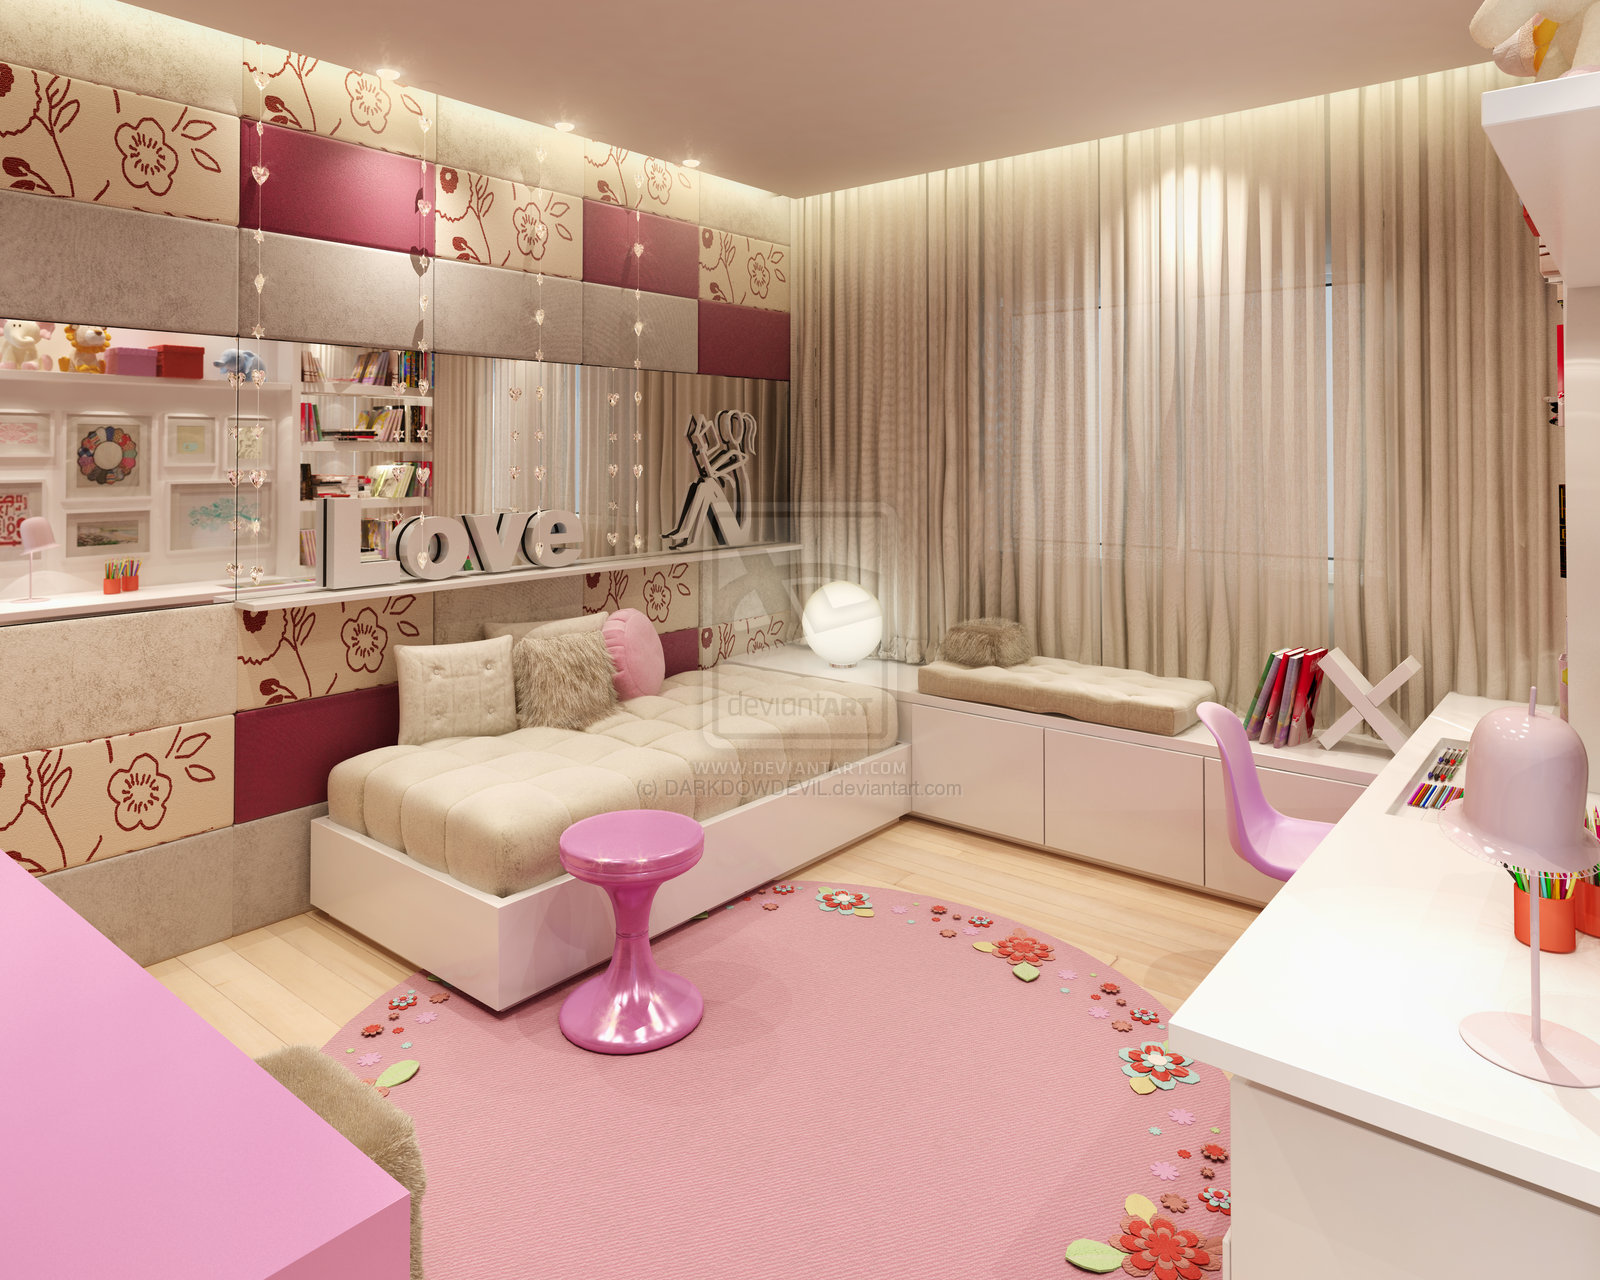 Girly bedroom design ideas azee for Girly bedroom ideas